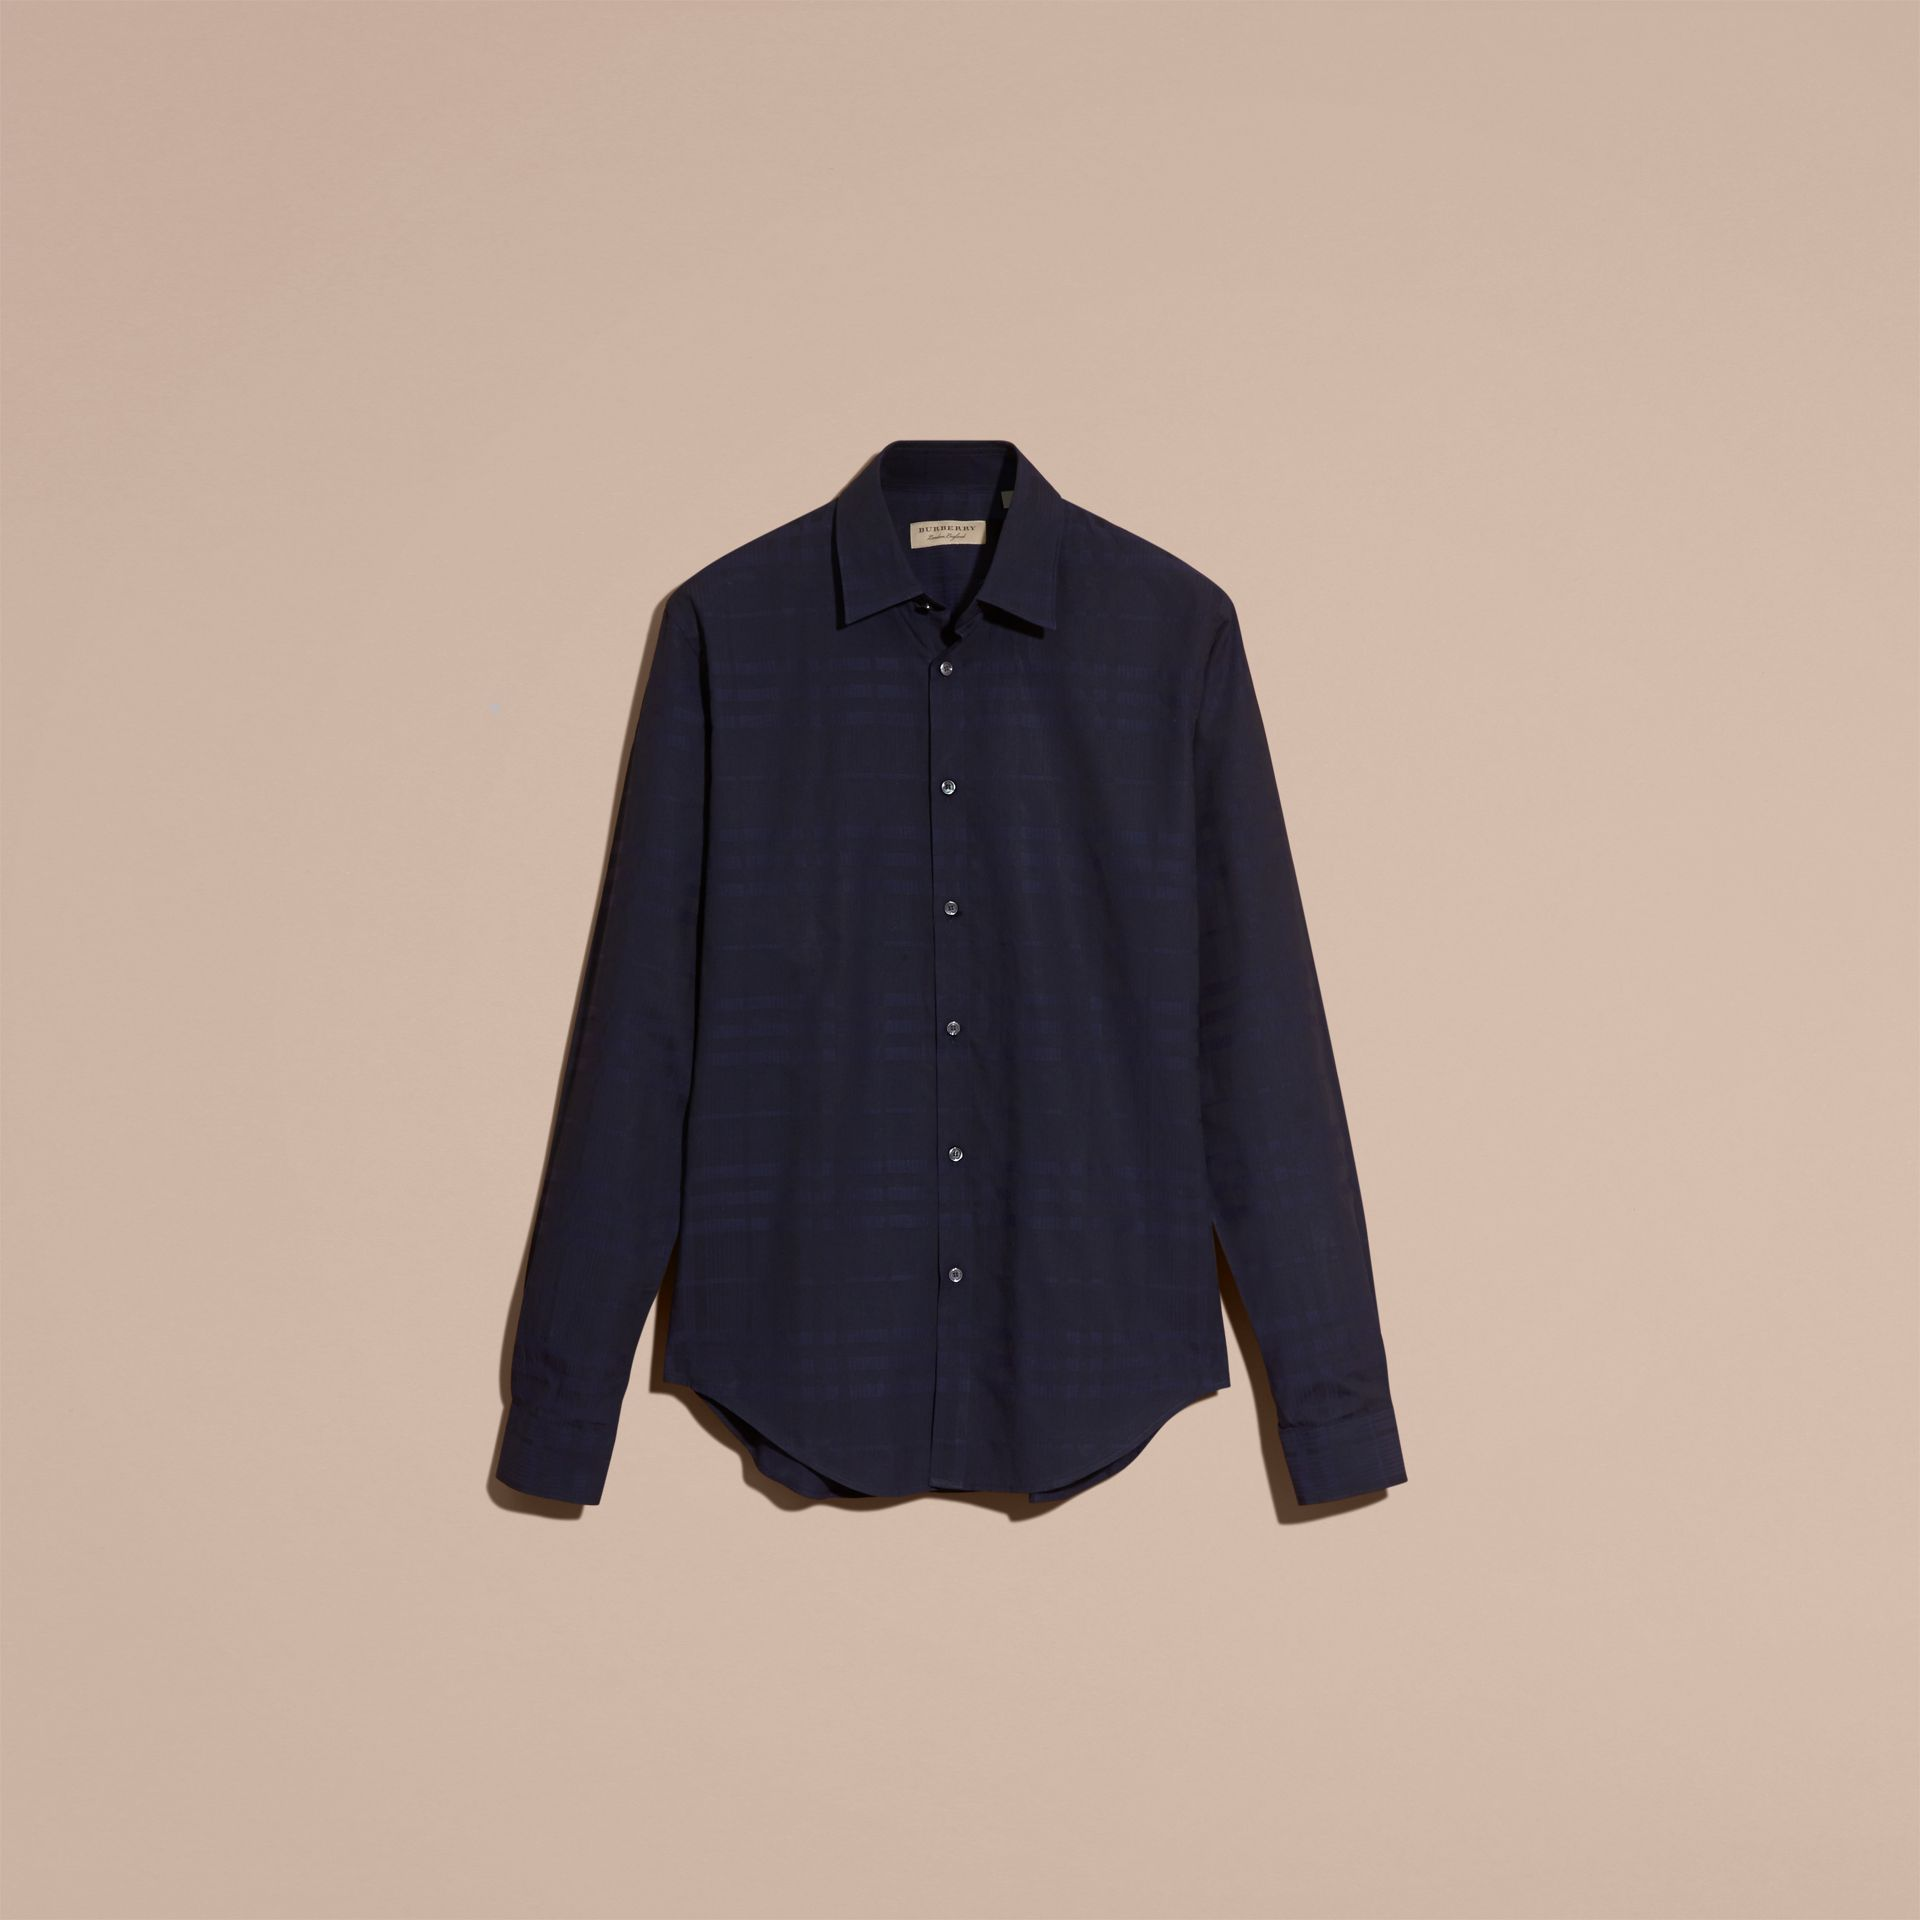 Navy Check Jacquard Cotton Shirt Navy - gallery image 4